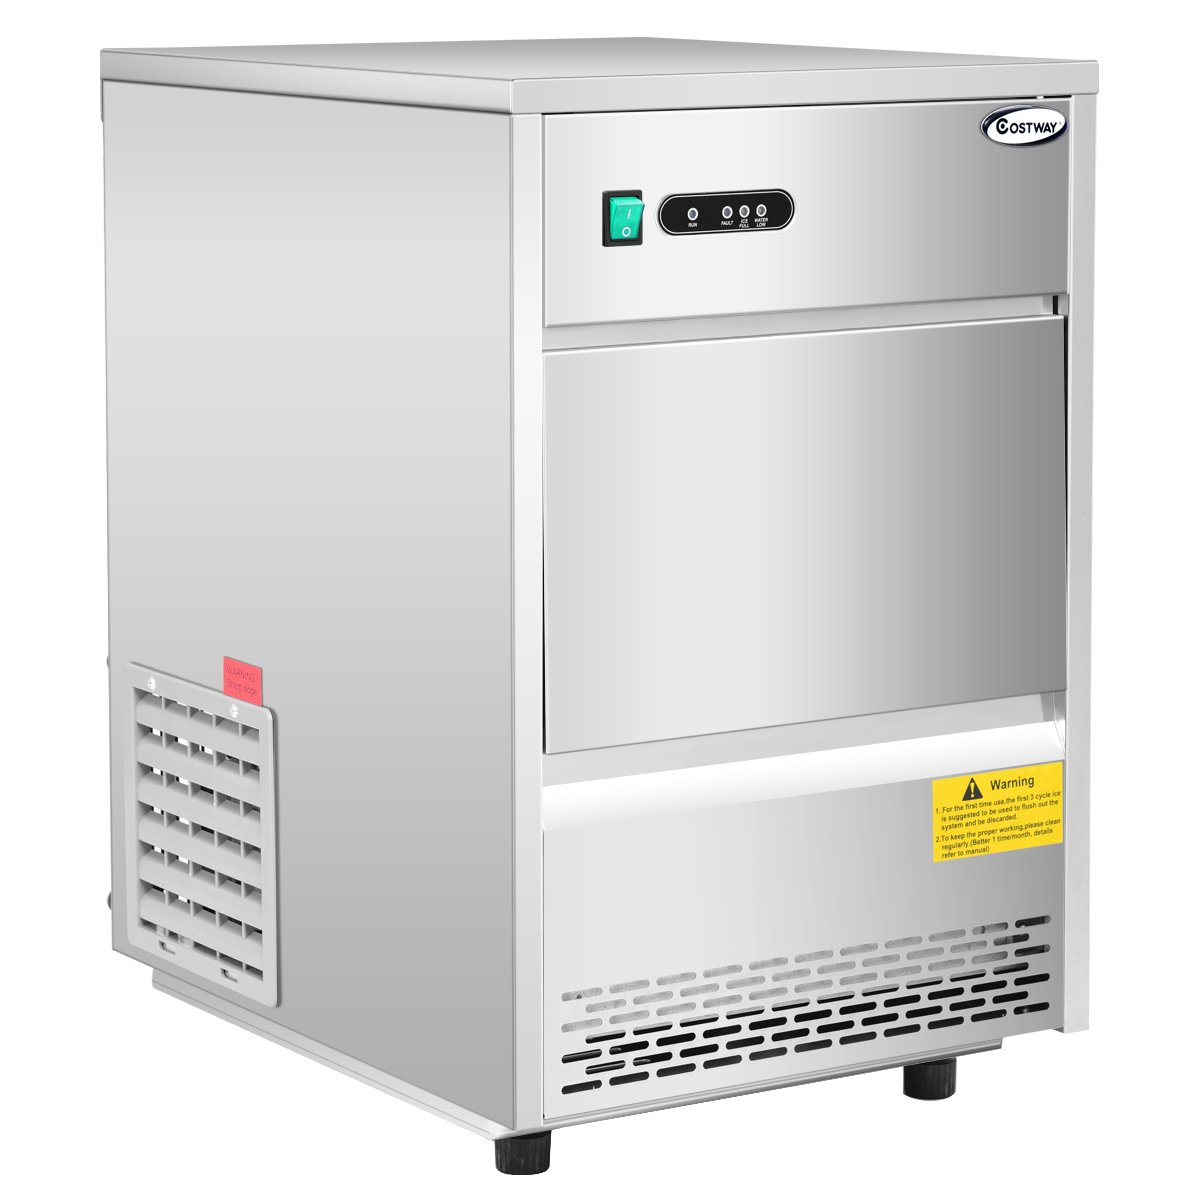 Costway Stainless Steel Commercial Automatic Ice Maker Portable Freestanding Ice Machine (58 lbs/24h) 23363-CYPE-CS